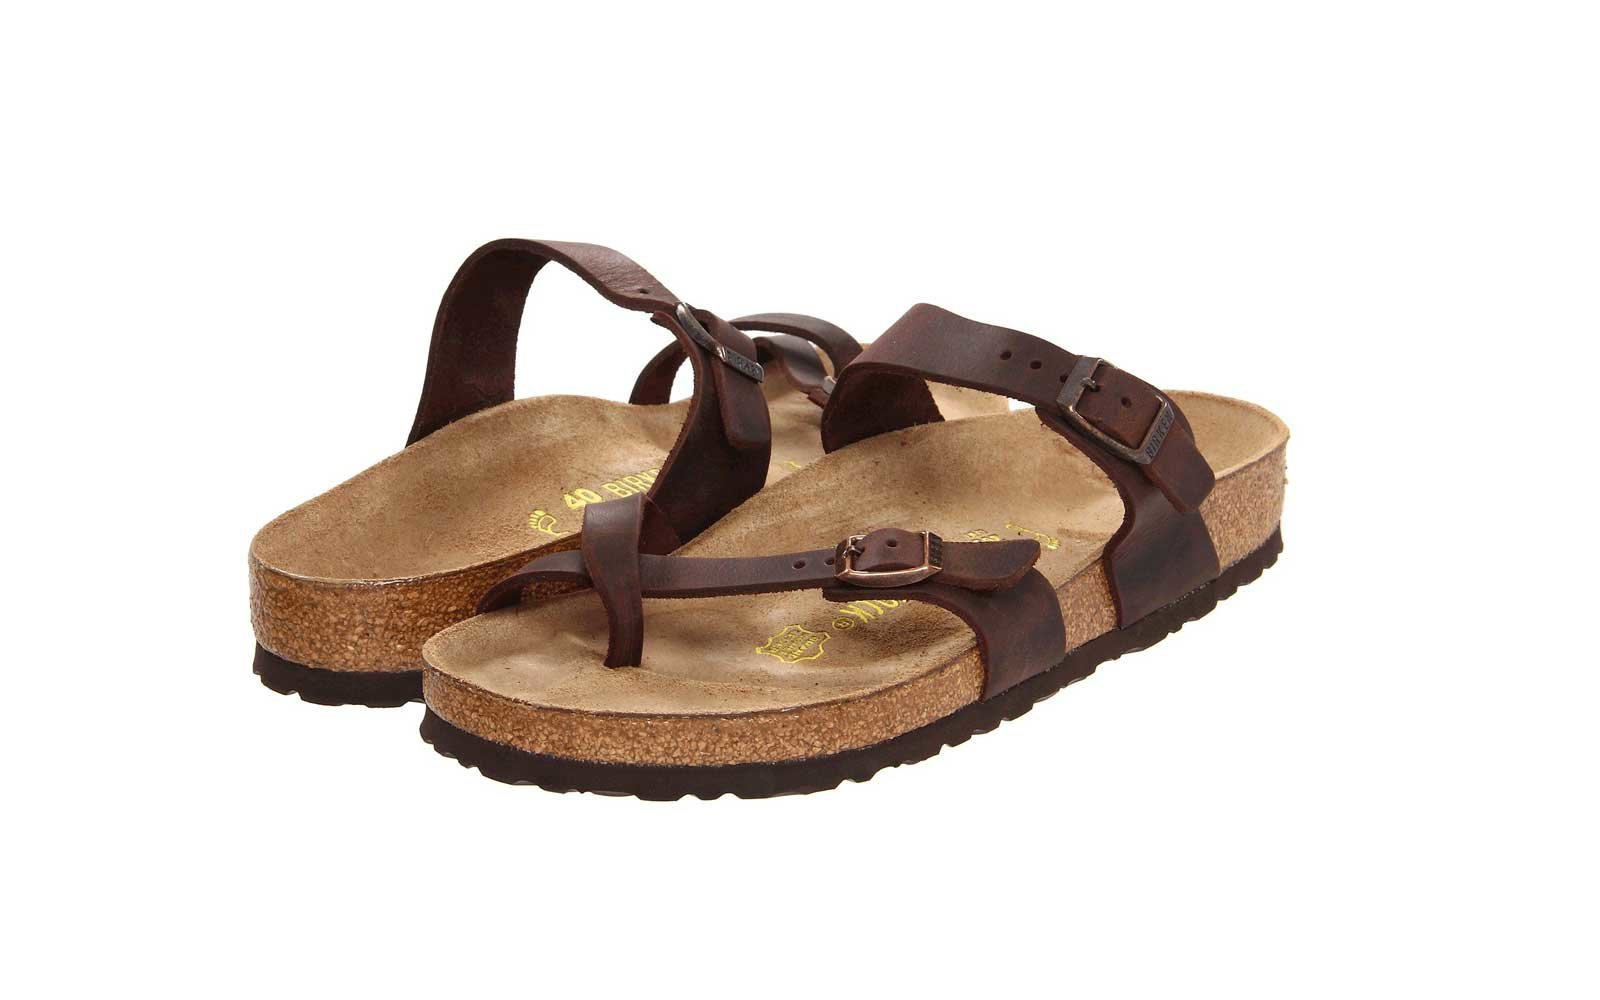 birkenstock womens comfortable walking sandals